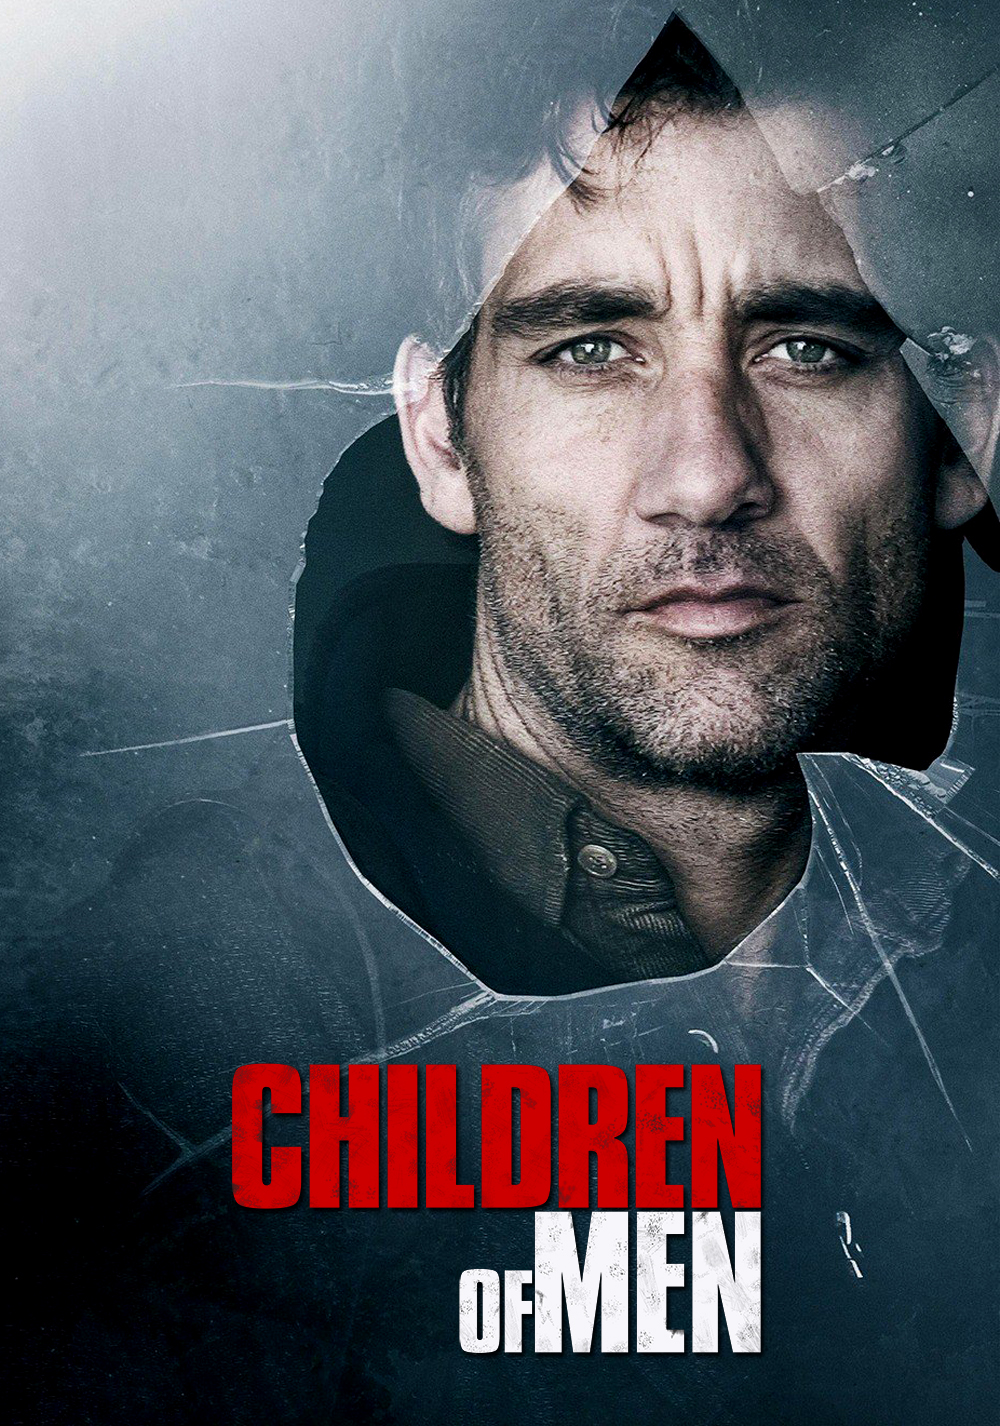 Filhos da Esperança (Children of Men) - Poster - 2